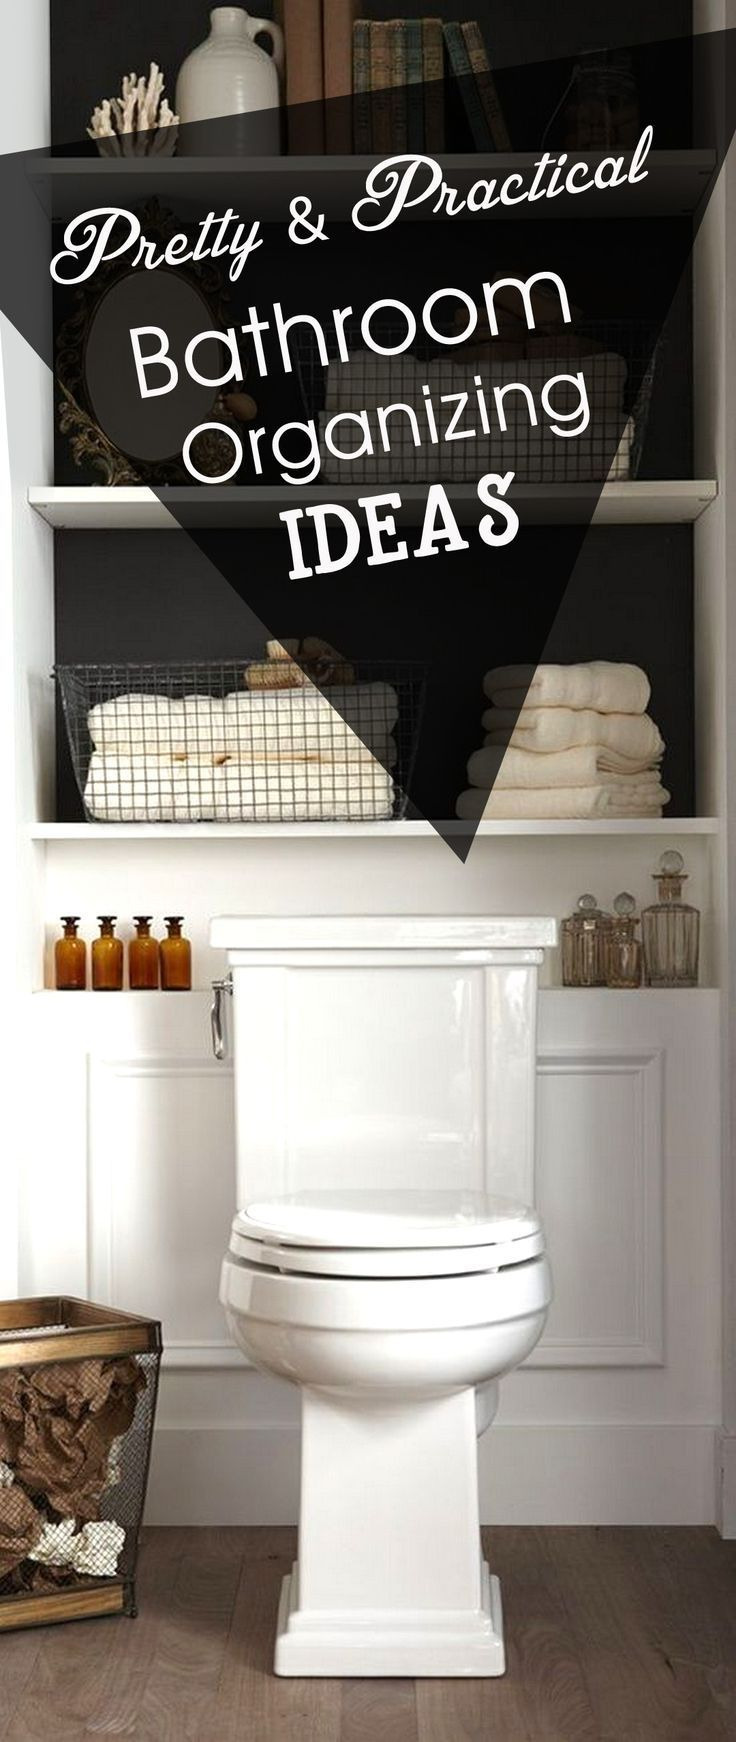 Ways to Decorate Your Bathroom Beautiful Super Creative Ways to Decorate Your Bathroom